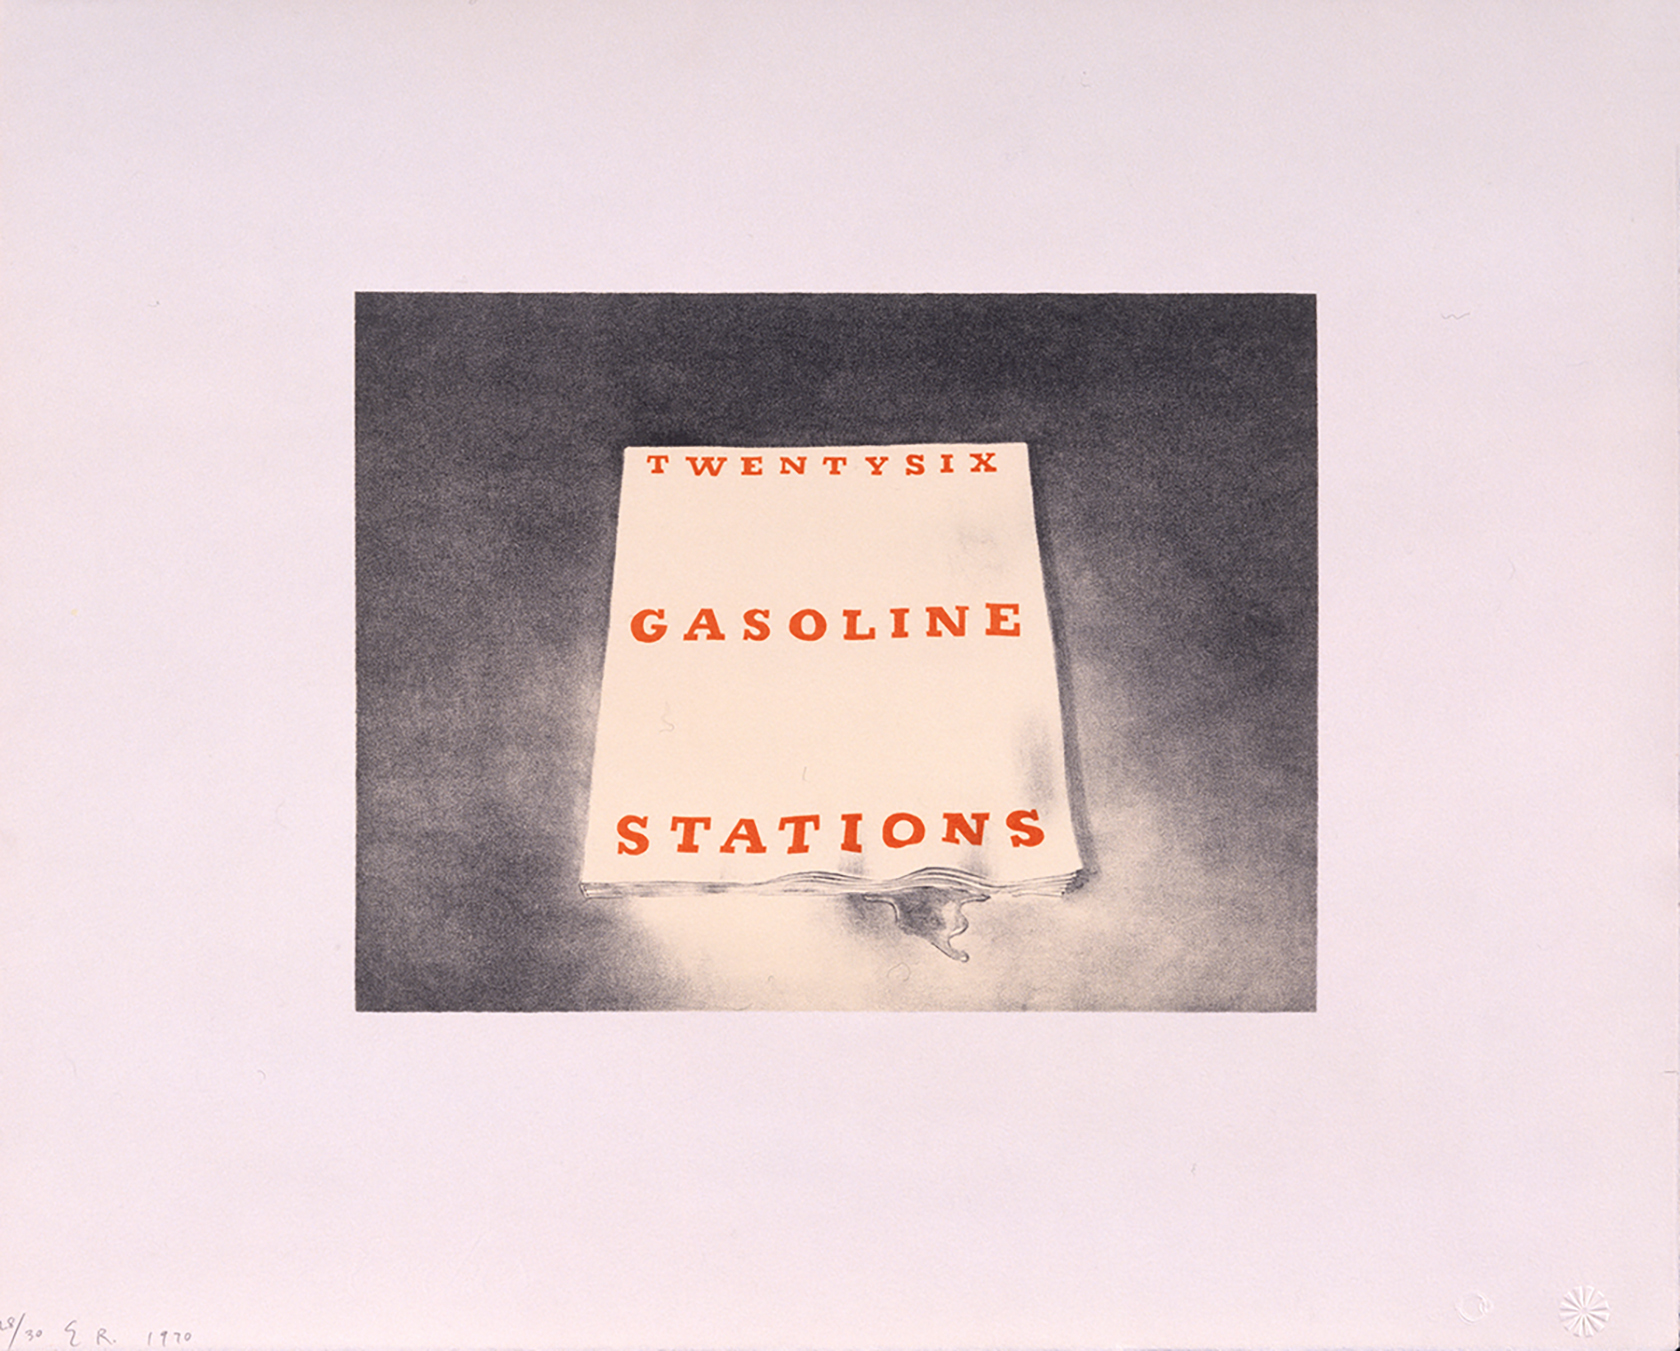 Drawing of a book cover that says Twentysix Gasoline Stations in red text on a white background